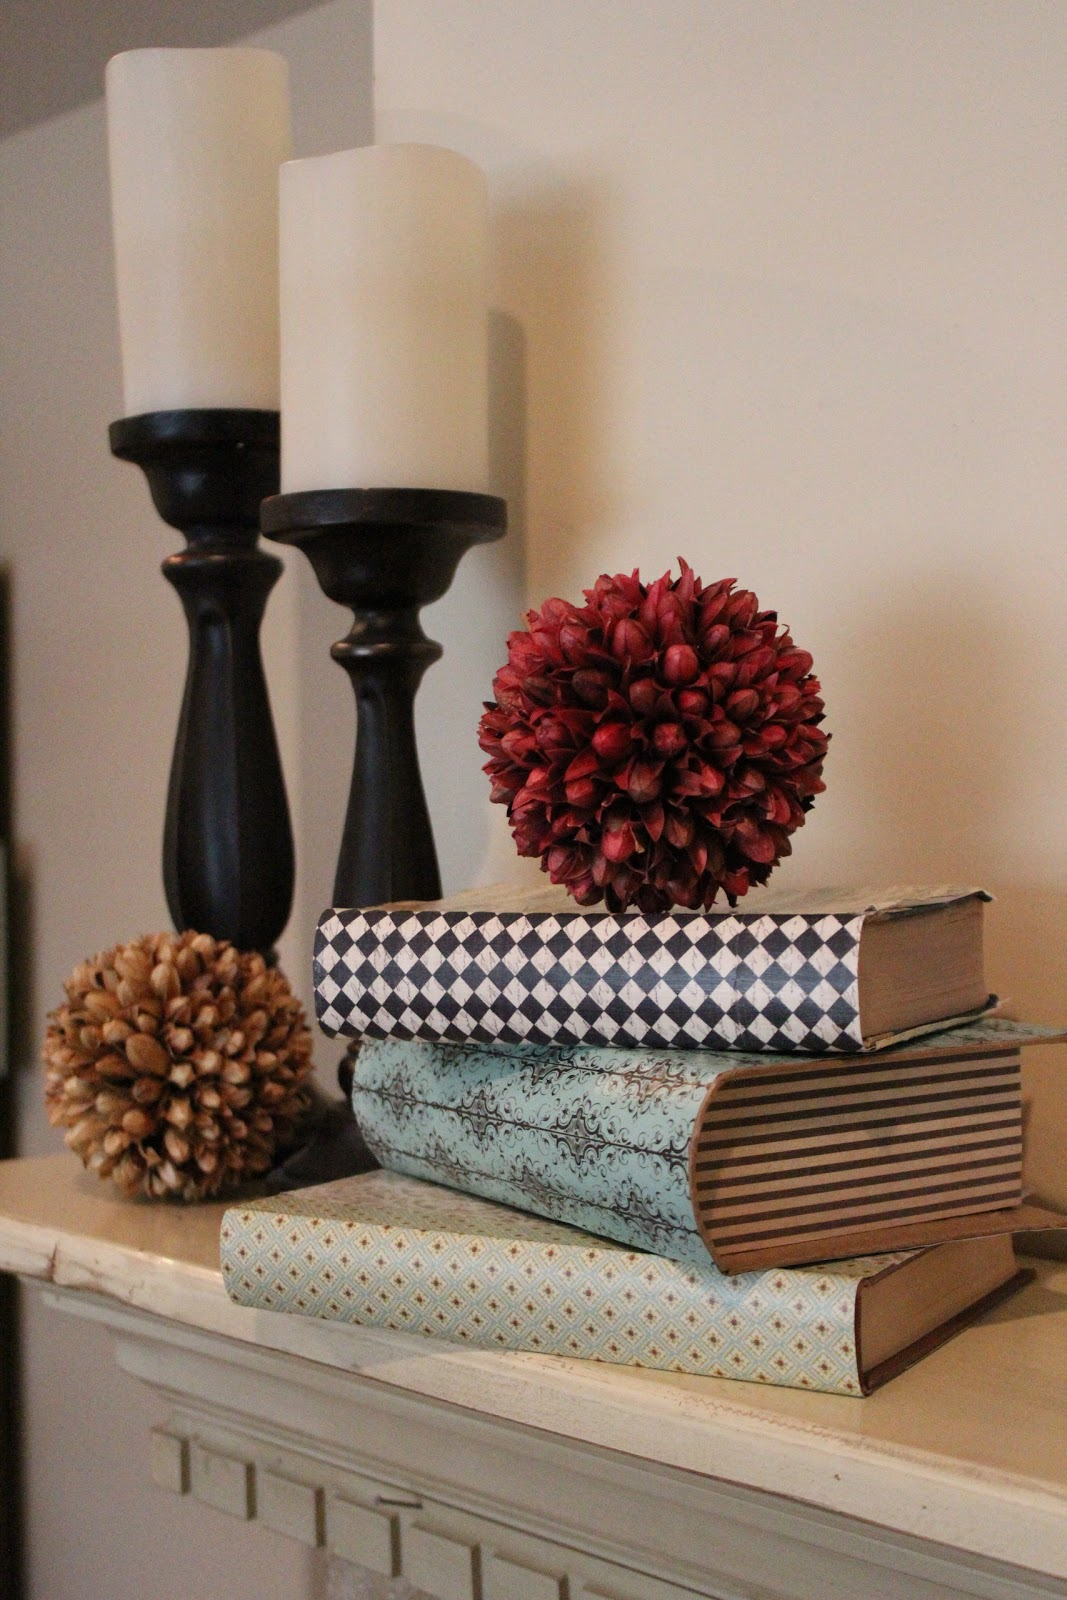 DIY Hardcover Book Decor